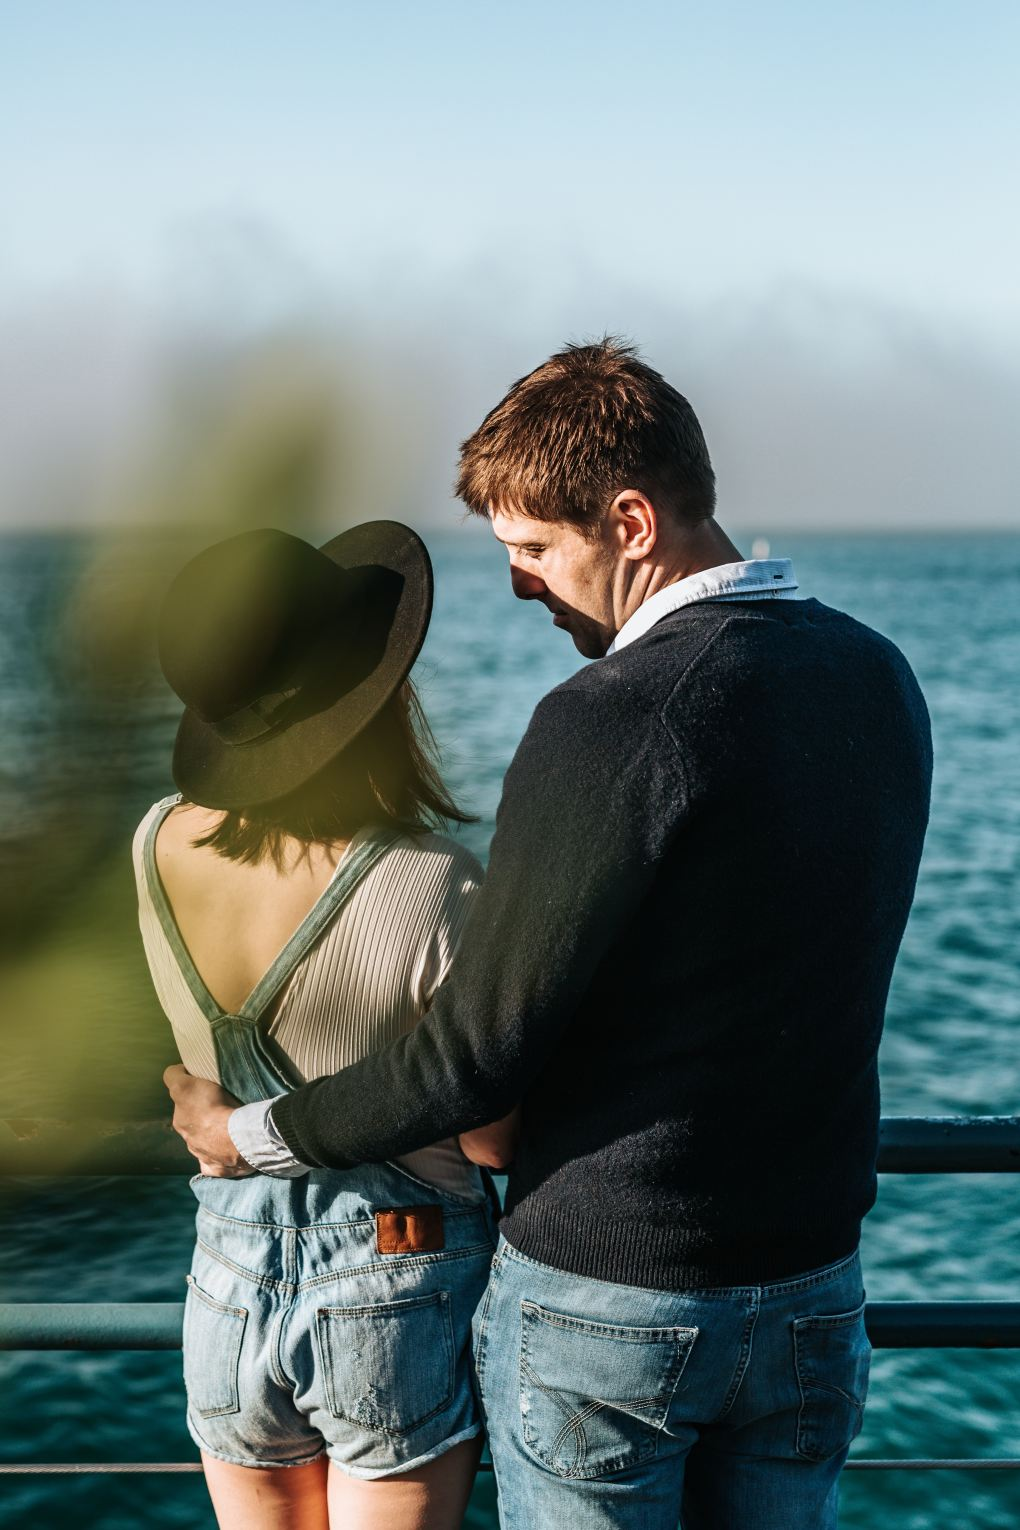 Man wearing a black jumper and woman wearing dungarees and a hat standing by a railing looking out over the sea